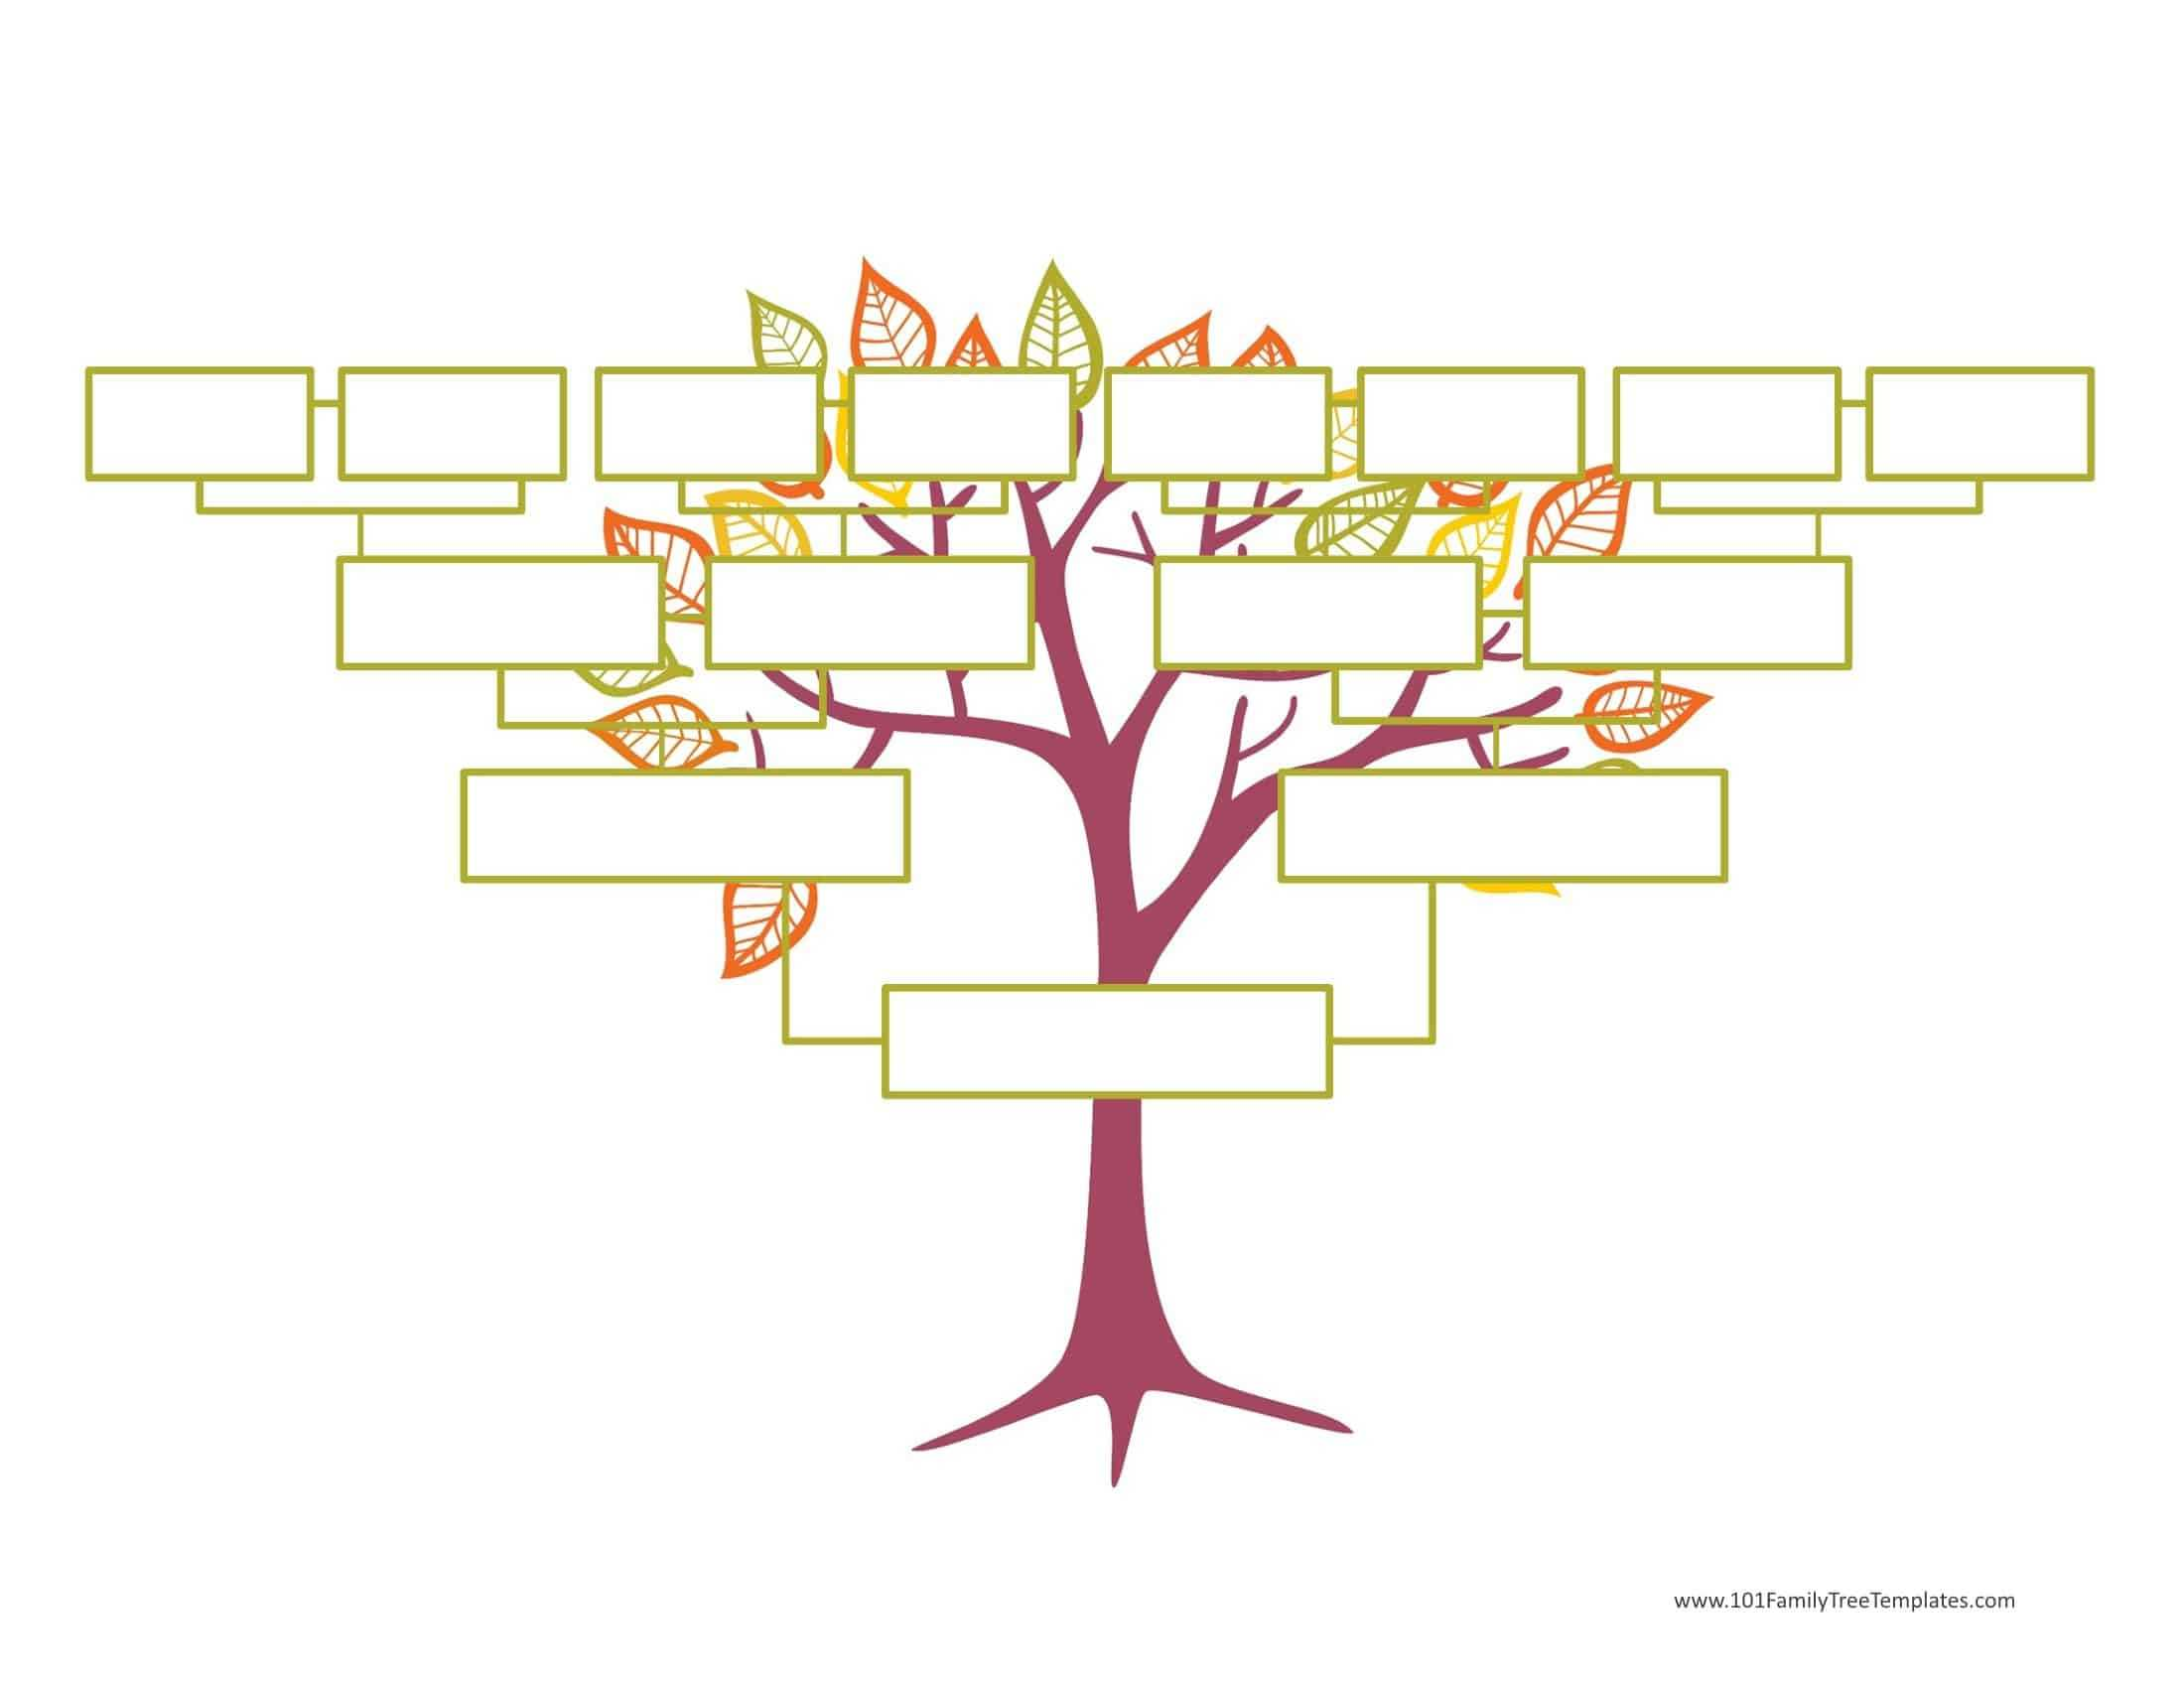 Blank Family Tree Template   Free Instant Download For Fill In The Blank Family Tree Template